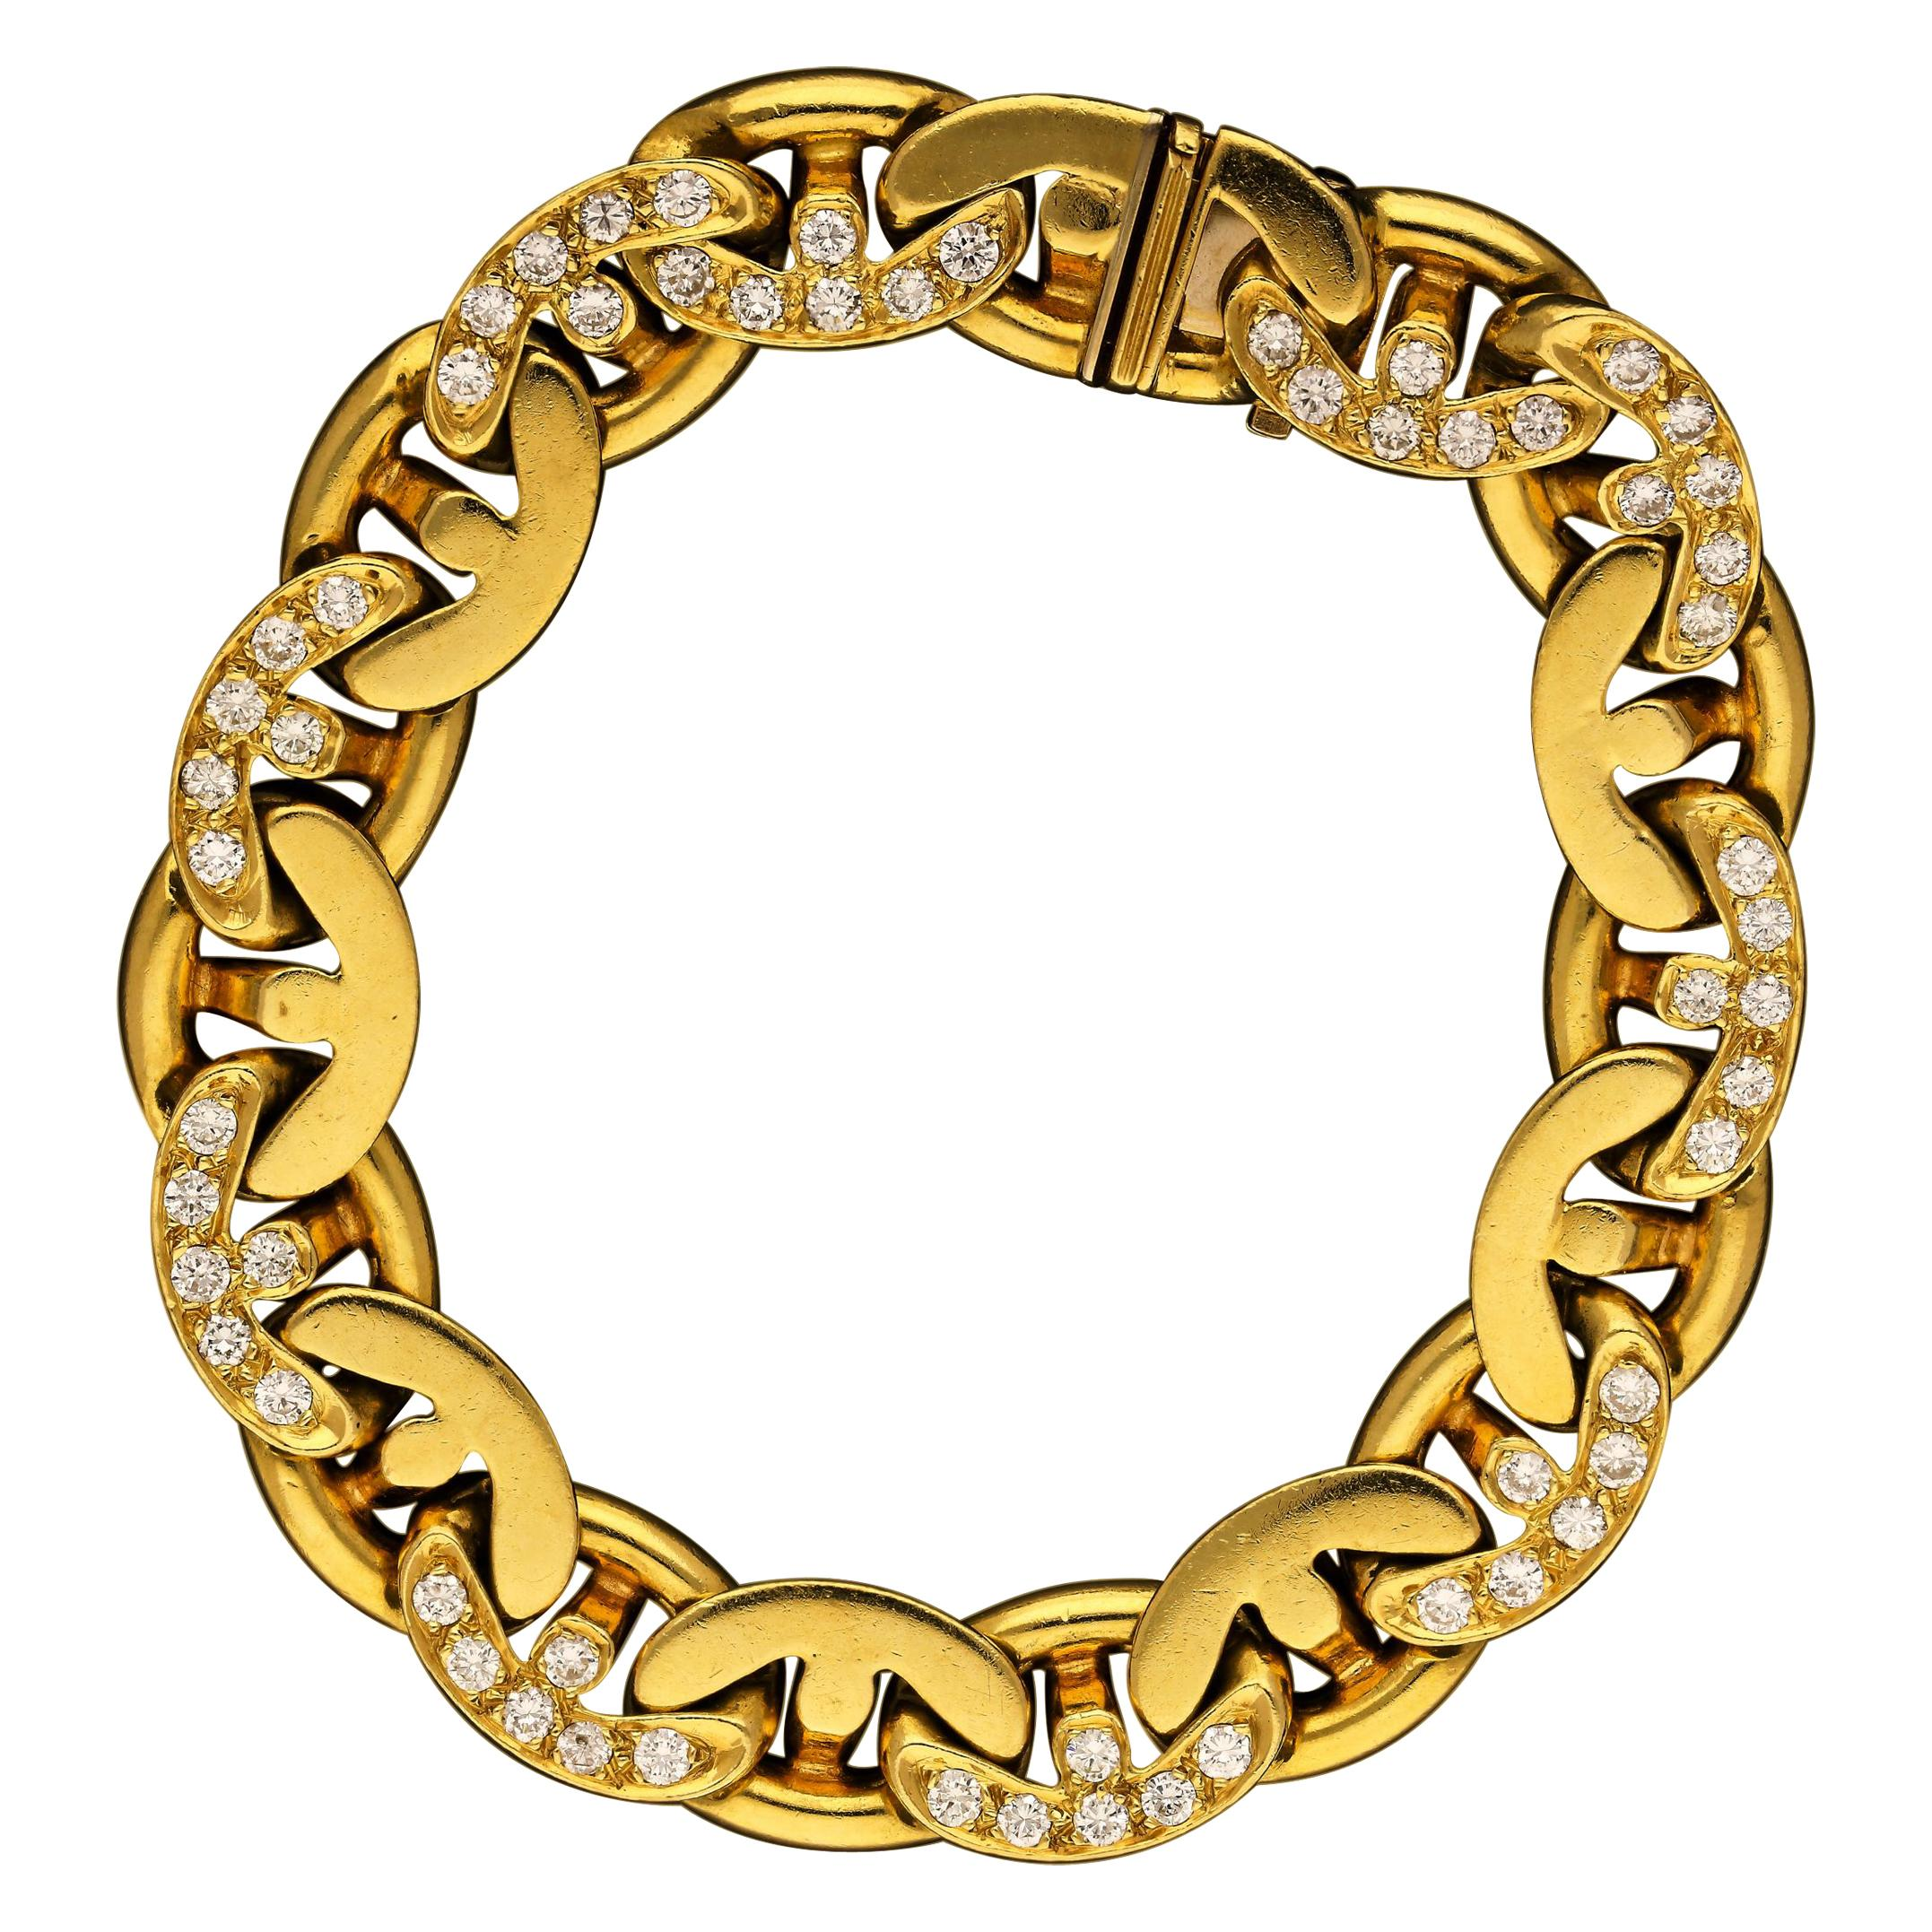 Bulgari 18 Carat Gold and Diamond Anchor Chain Link Bracelet circa 1980s